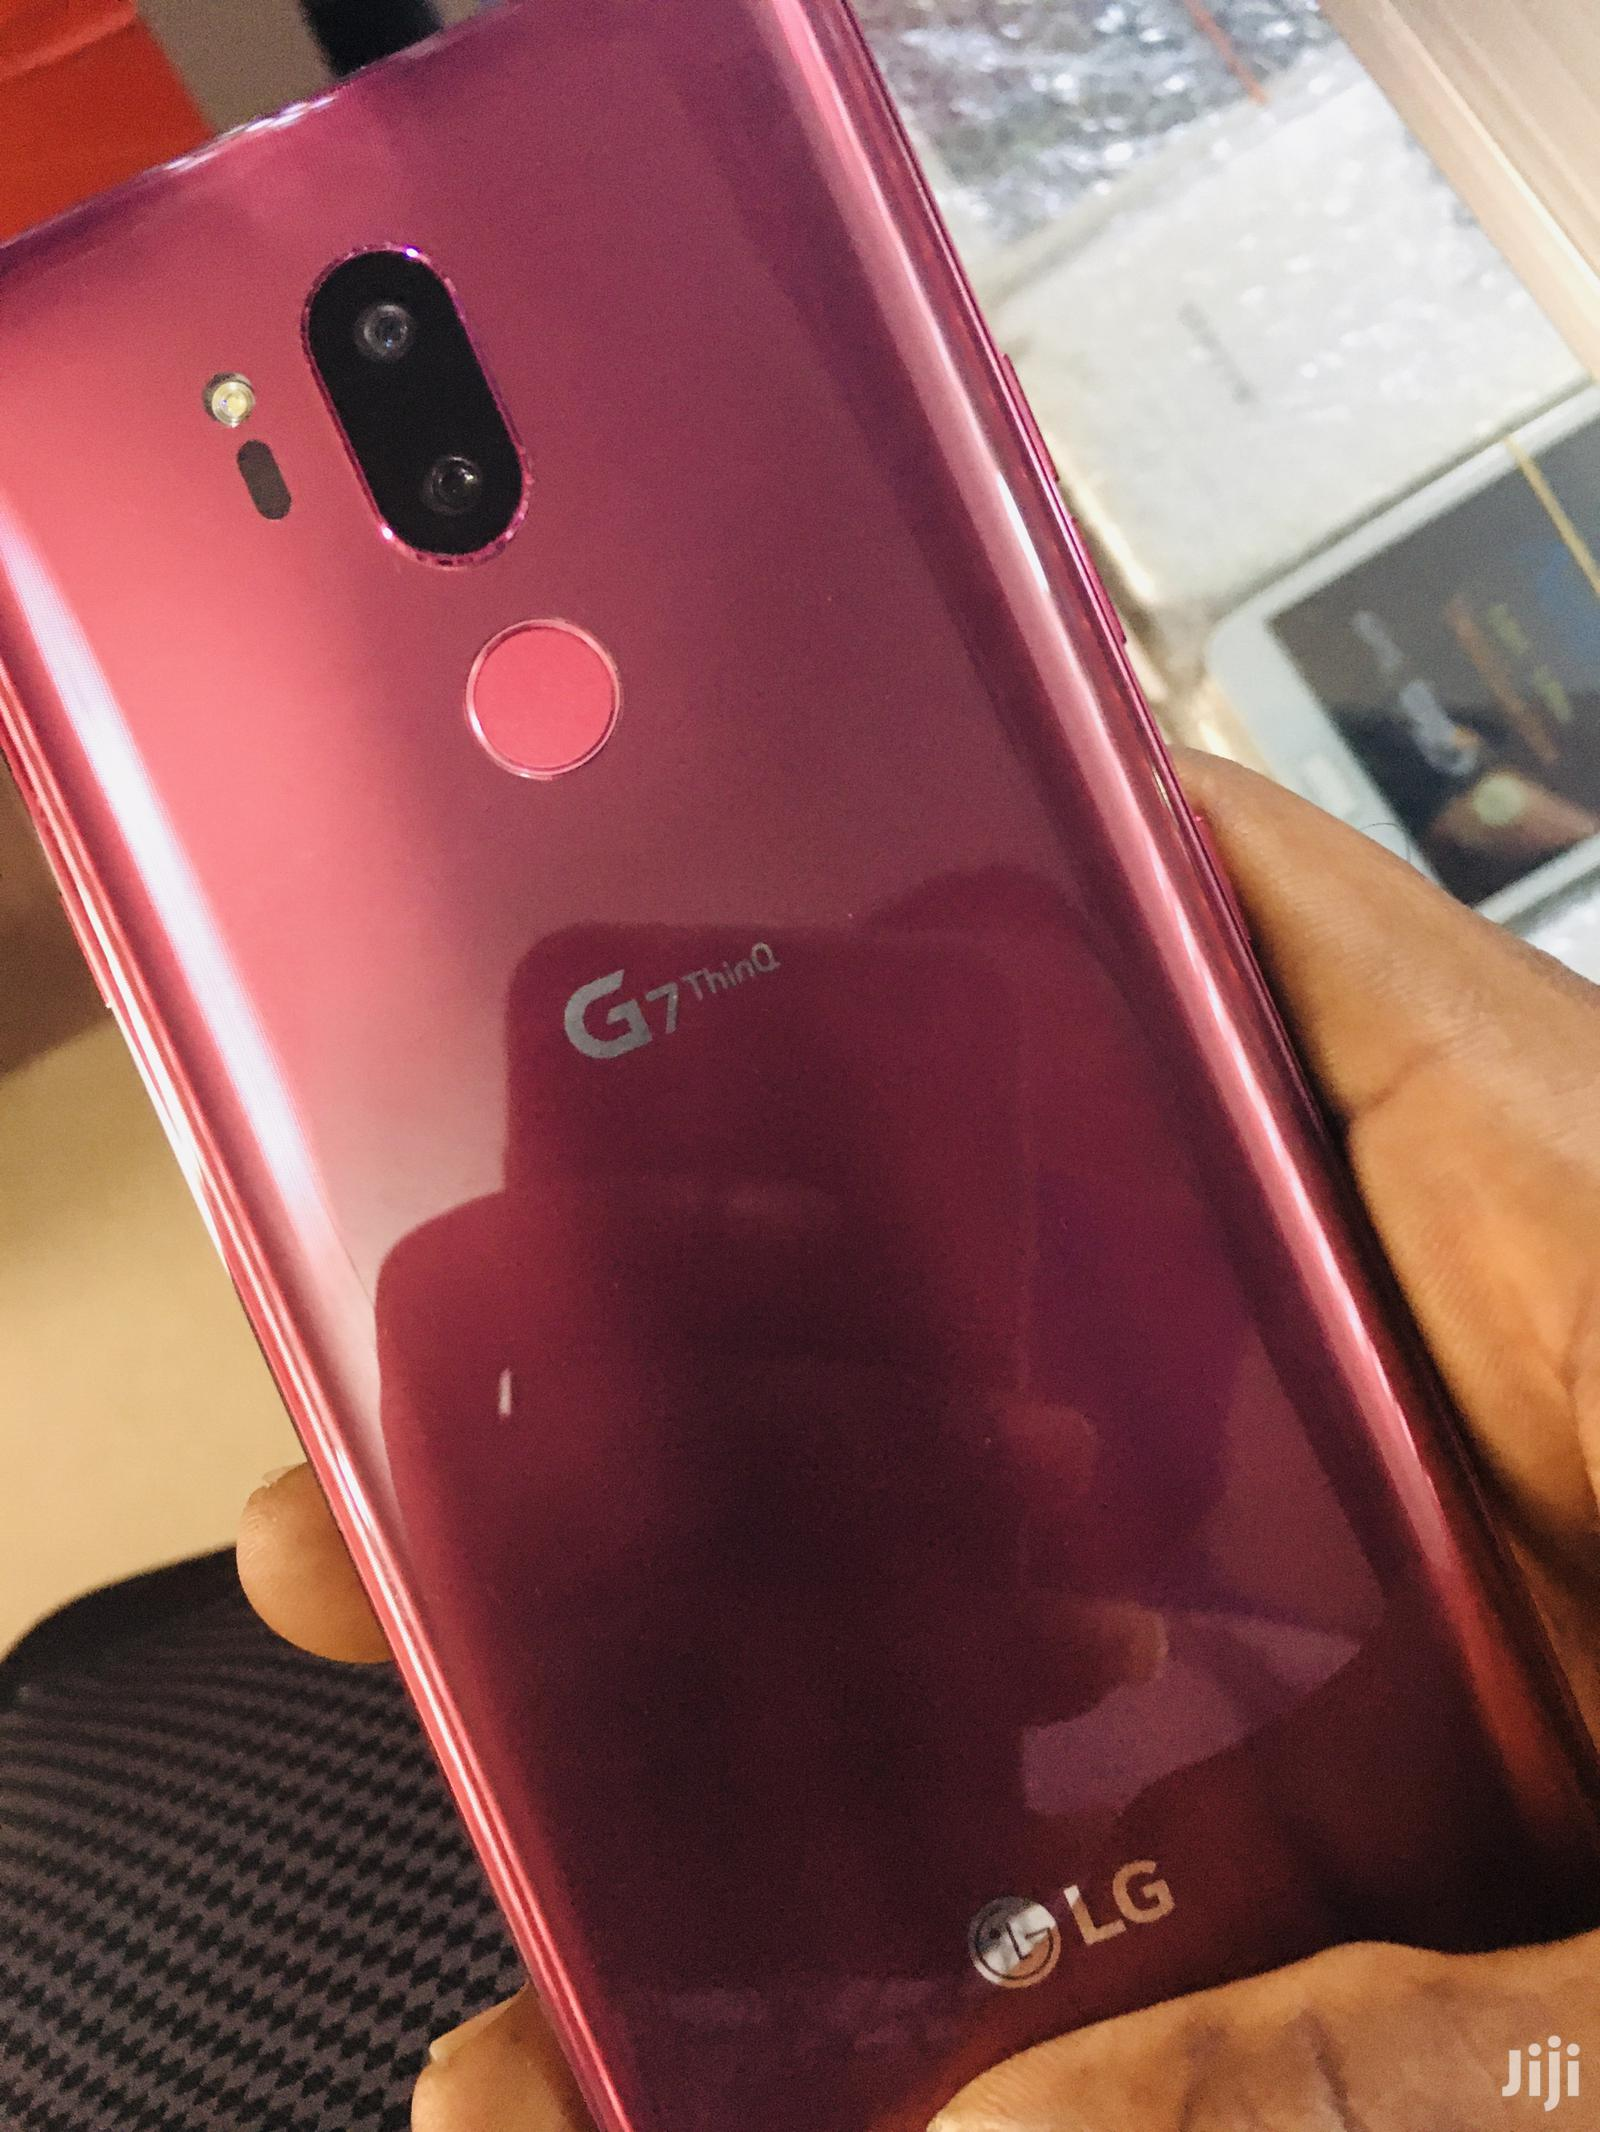 Archive: New LG G7 ThinQ 64 GB Pink